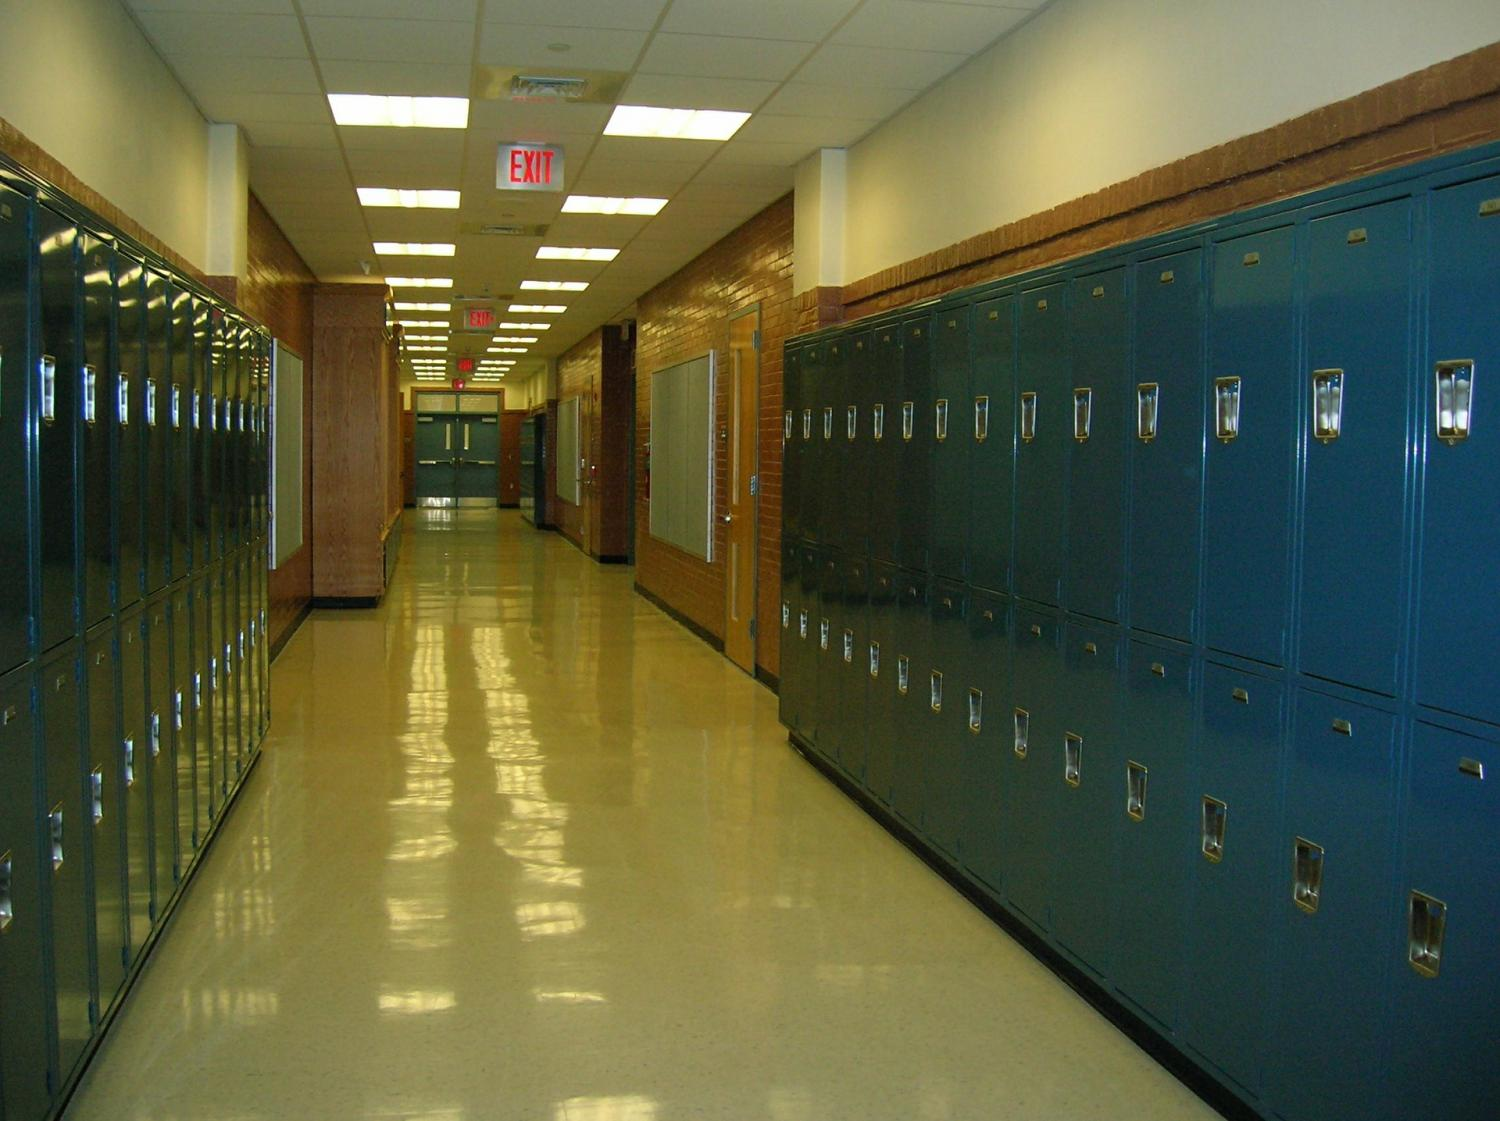 Exclusion from school can trigger long-term psychiatric illness